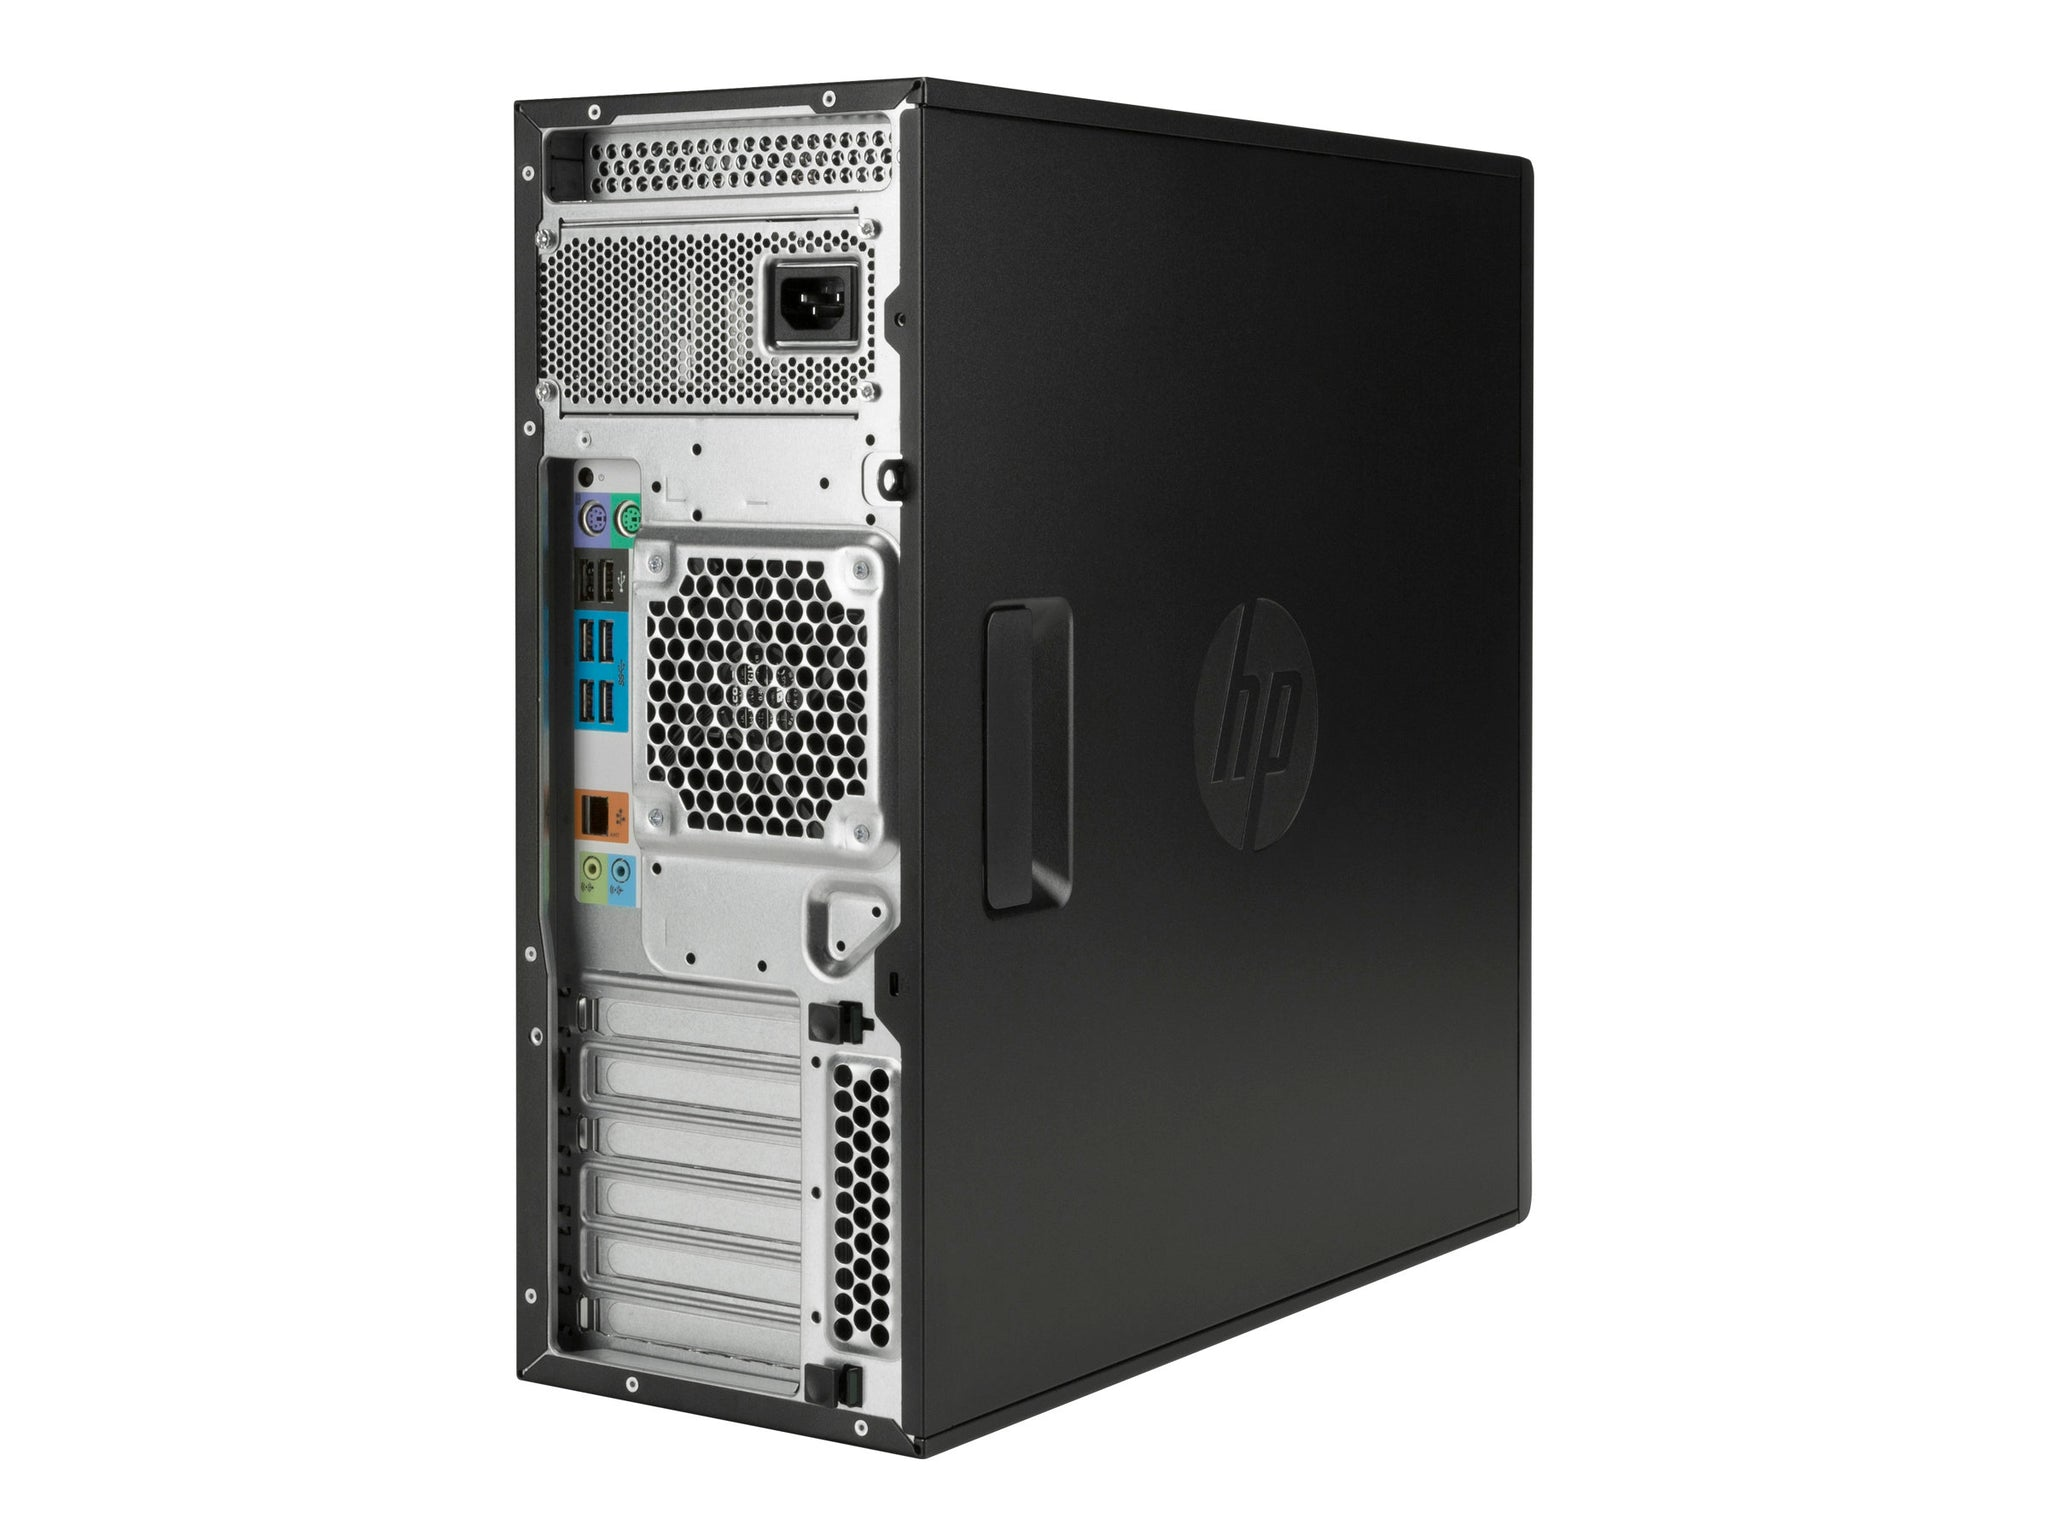 HP Z440 Workstation Tower PC Ex Lease intel CPU E5-1620 V3 3.50 GHZ 32GB RAM 256GB SSD + 1TB HDD Nvidia Quadro K620 Graphics Card DVD-R Windows 10 Pro With WIFI and Bluetooth Ready